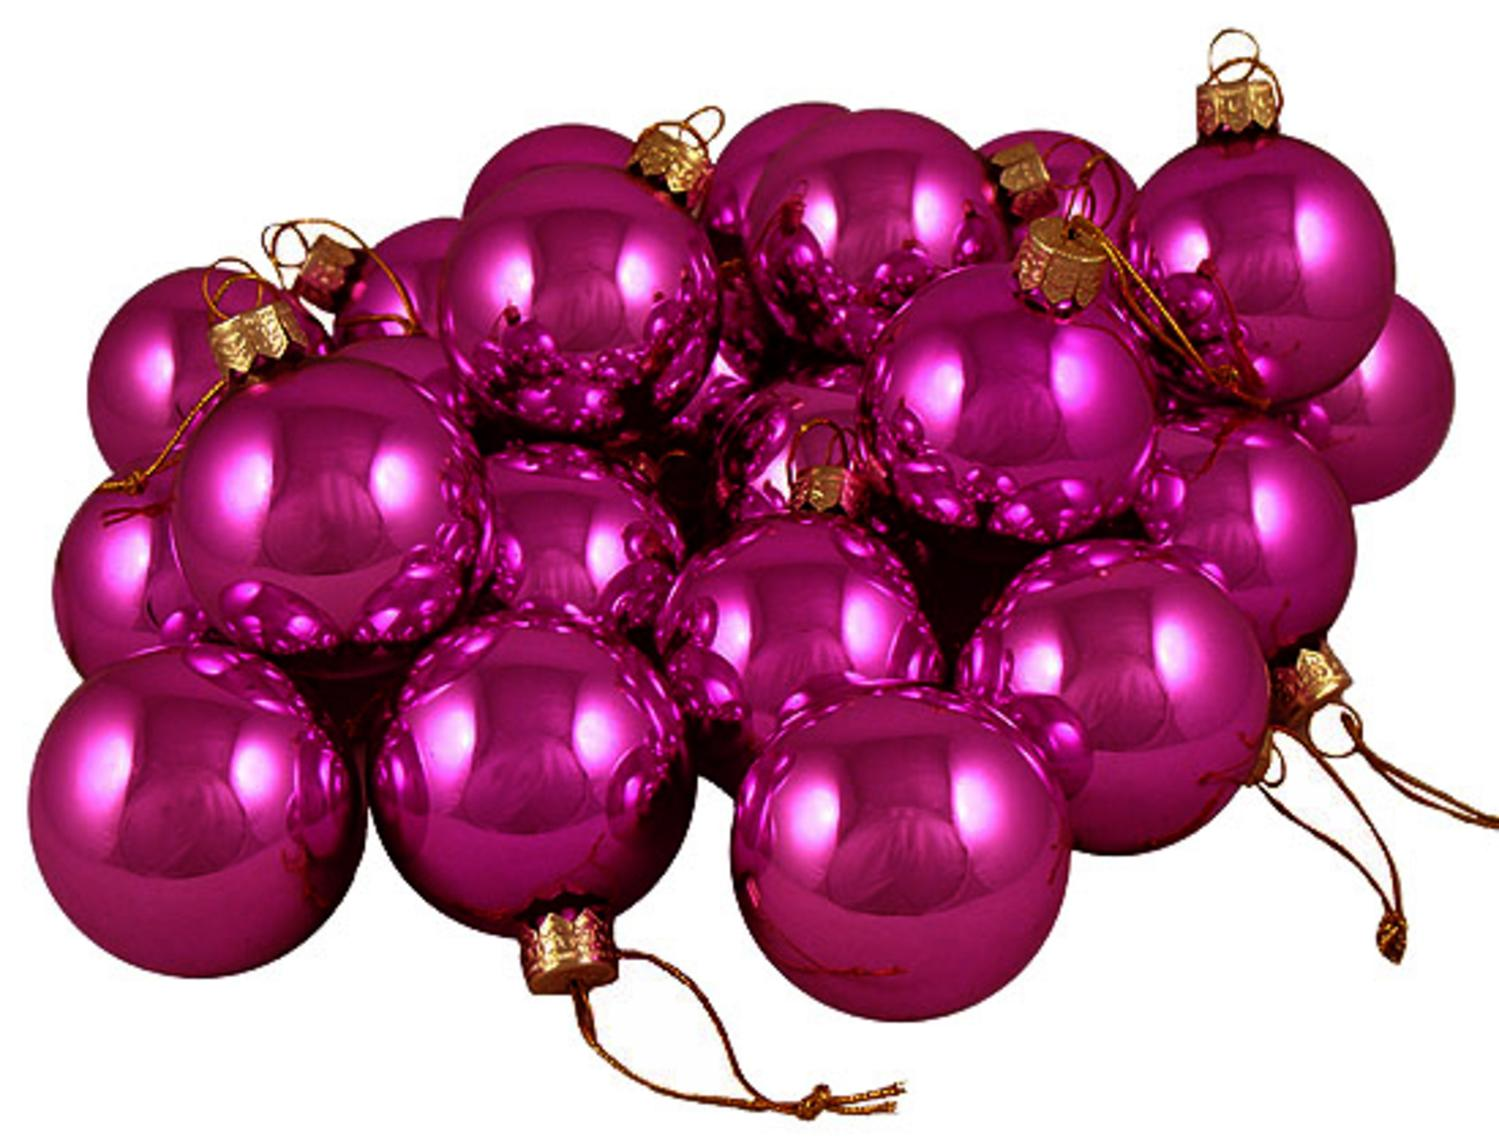 Club Pack Of 36 Shiny Fuschia Candy Glass Ball Christmas Ornaments 275